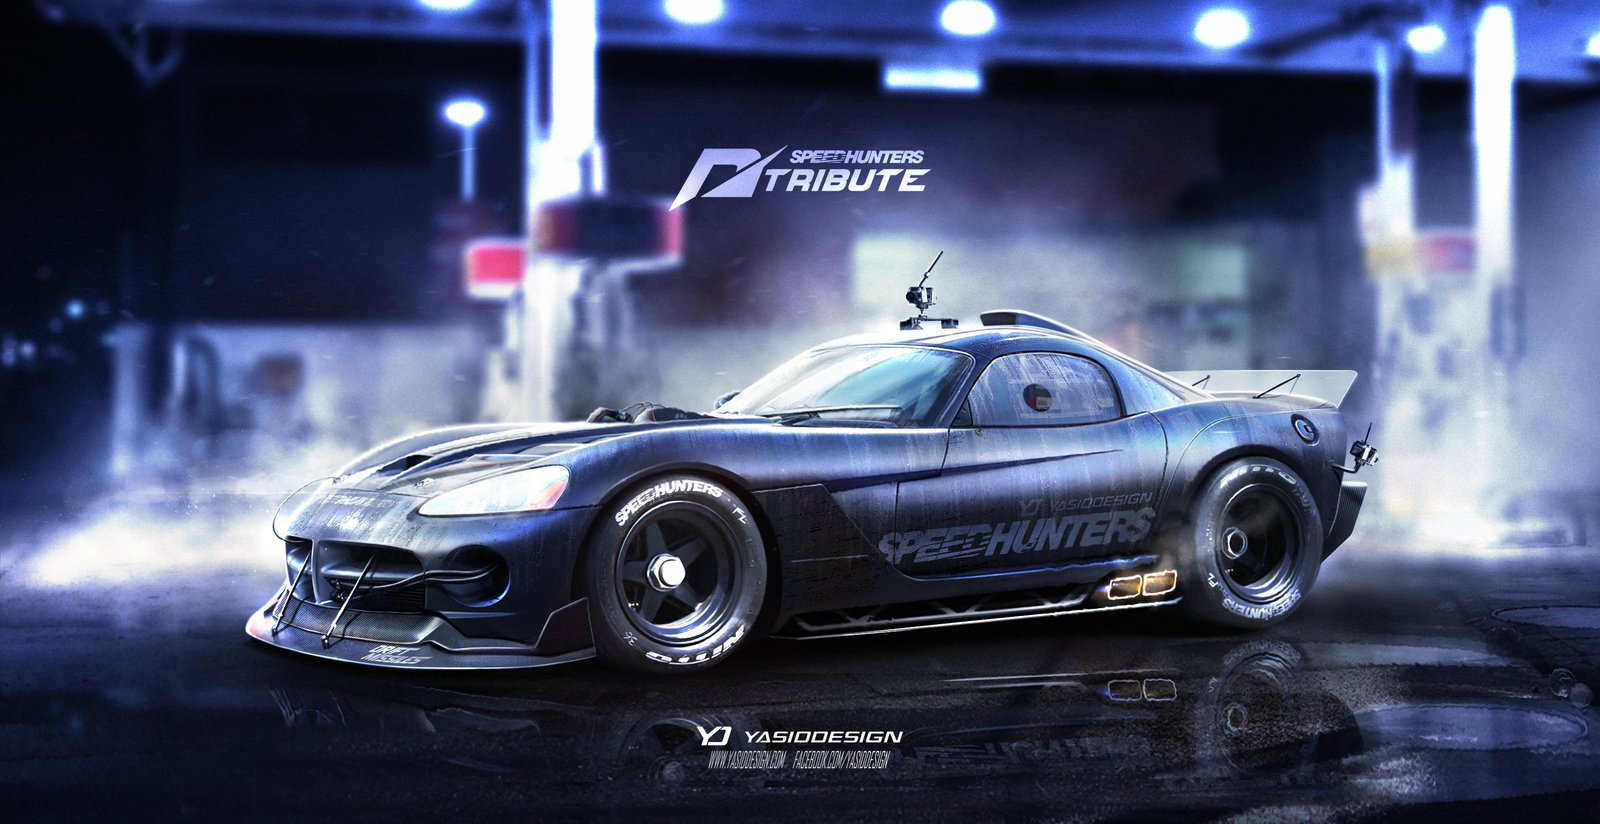 Speedhunters Dodge Viper SRT Need for speed tribute